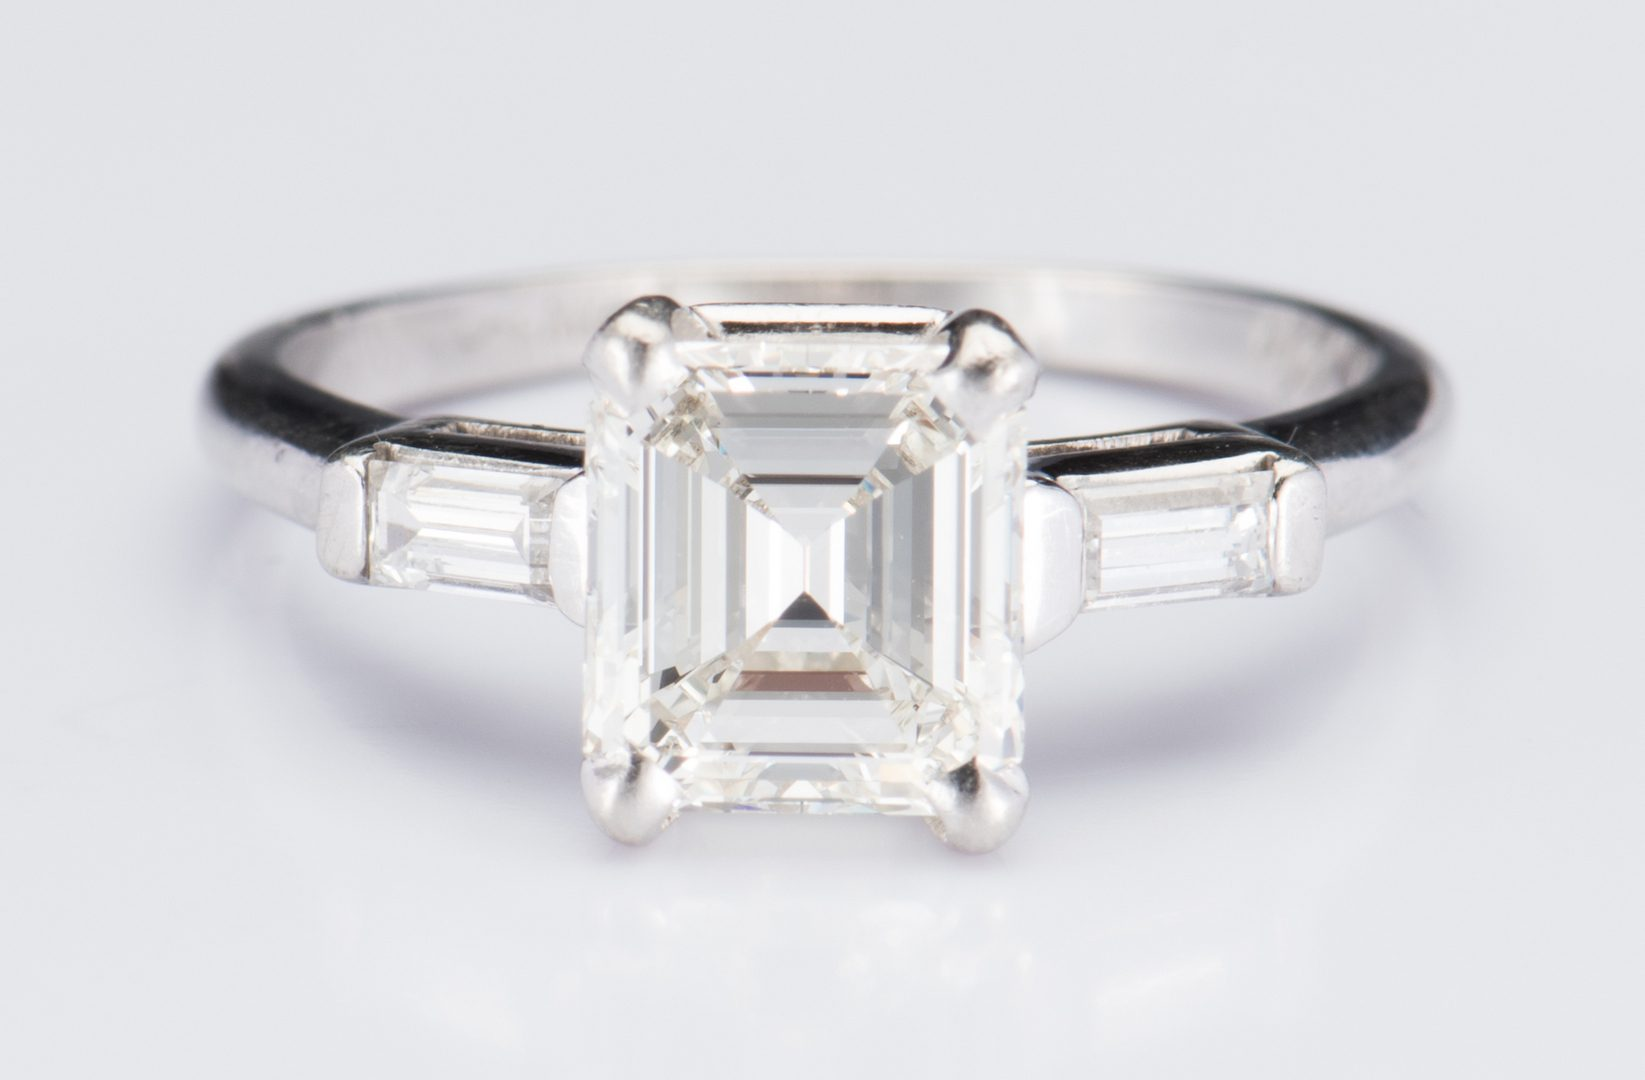 Lot 48: Plat 1.56 ct. Emerald Cut Diamond Ring